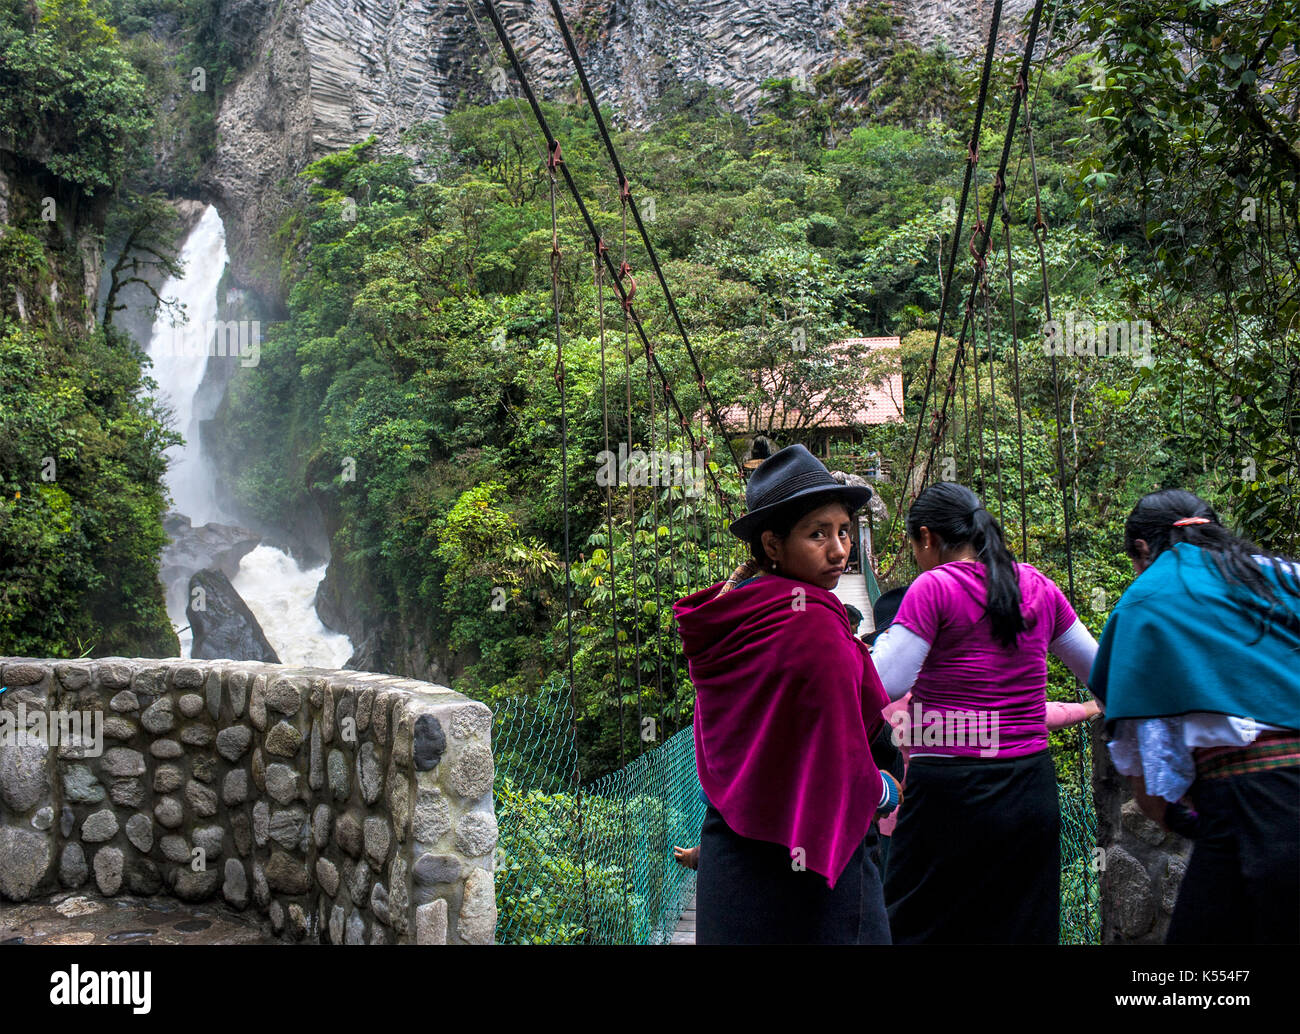 Banos de Agua Santa, Cascades route, Ecuador - May 1, 2012: Indigenous women walk across the bridge under Devil's Cauldron waterfall (spanish: Pailon  - Stock Image